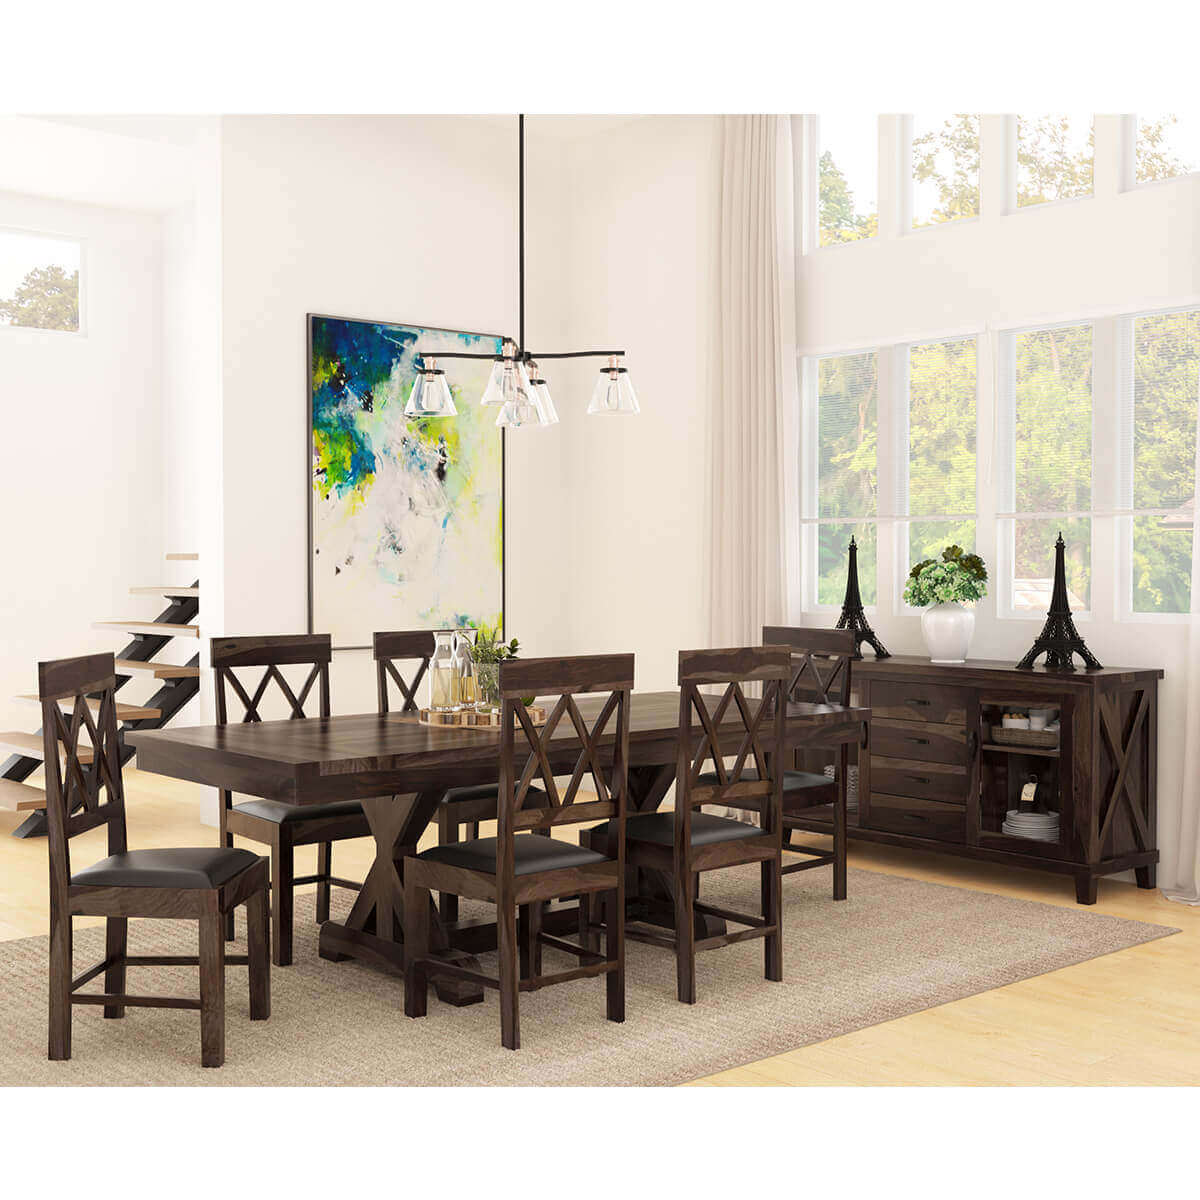 Dining Room Set With Extension antwerp farmhouse solid wood 8 piece extension dining room set